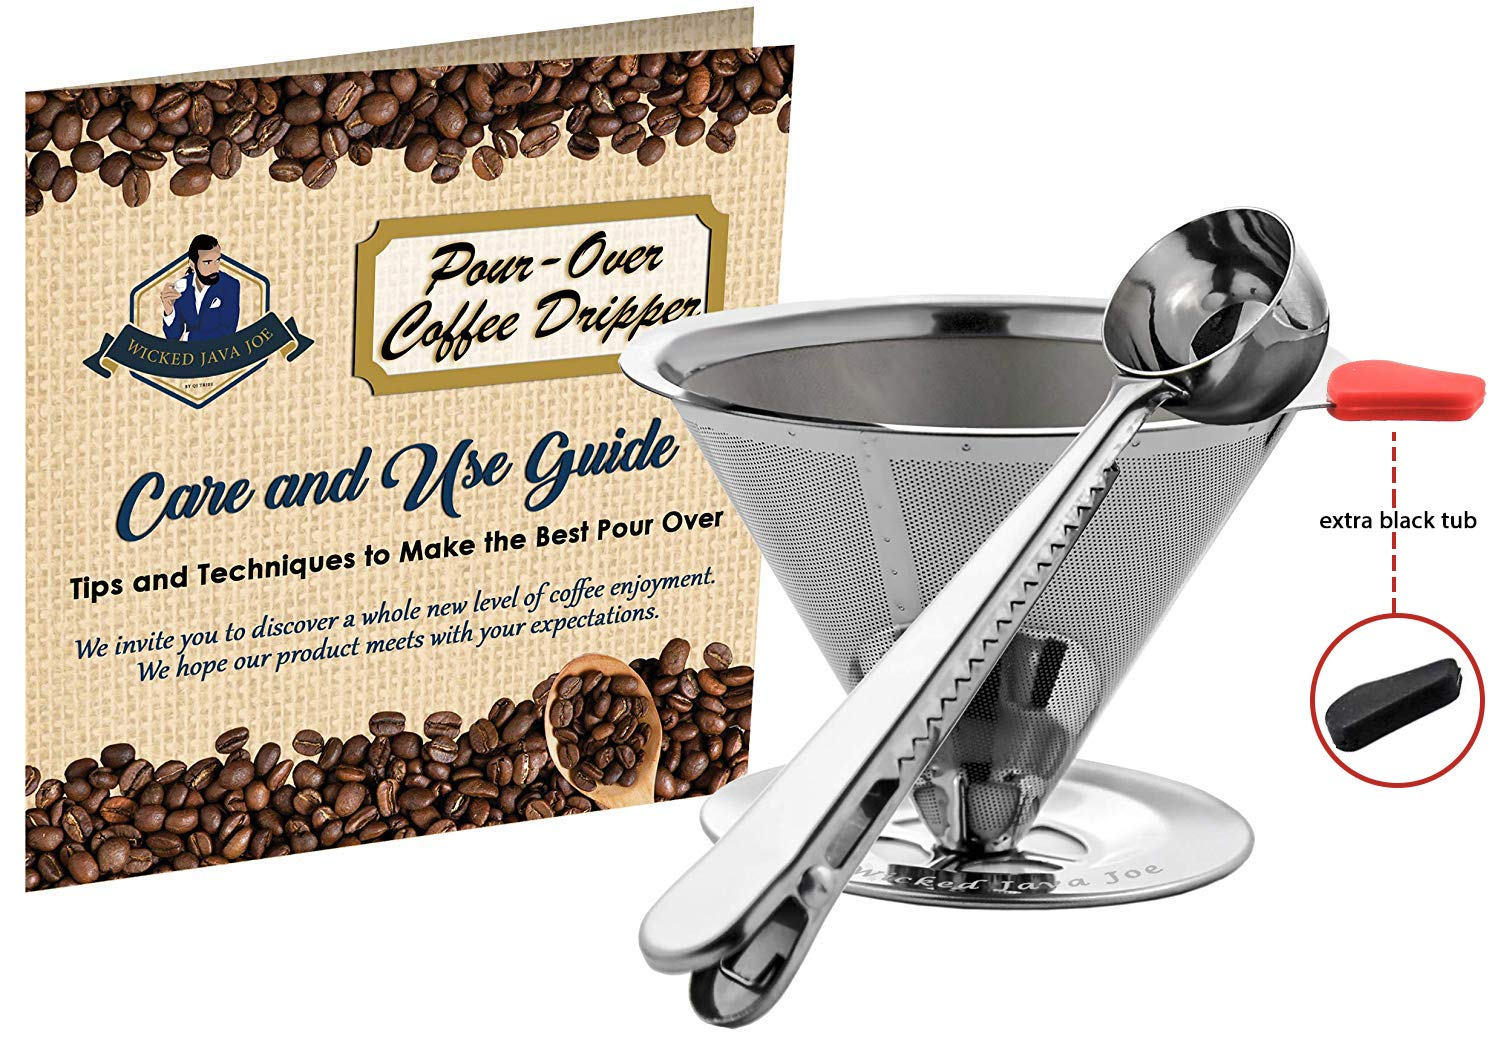 Wicked Java Joe 2 Cup Pour Over Coffee Dripper Makes Amazing Barista Quality Brew. Paperless, Reusable High Grade Stainless Steel Coffee Filter w/Bonus Coffee Scoop (Red)